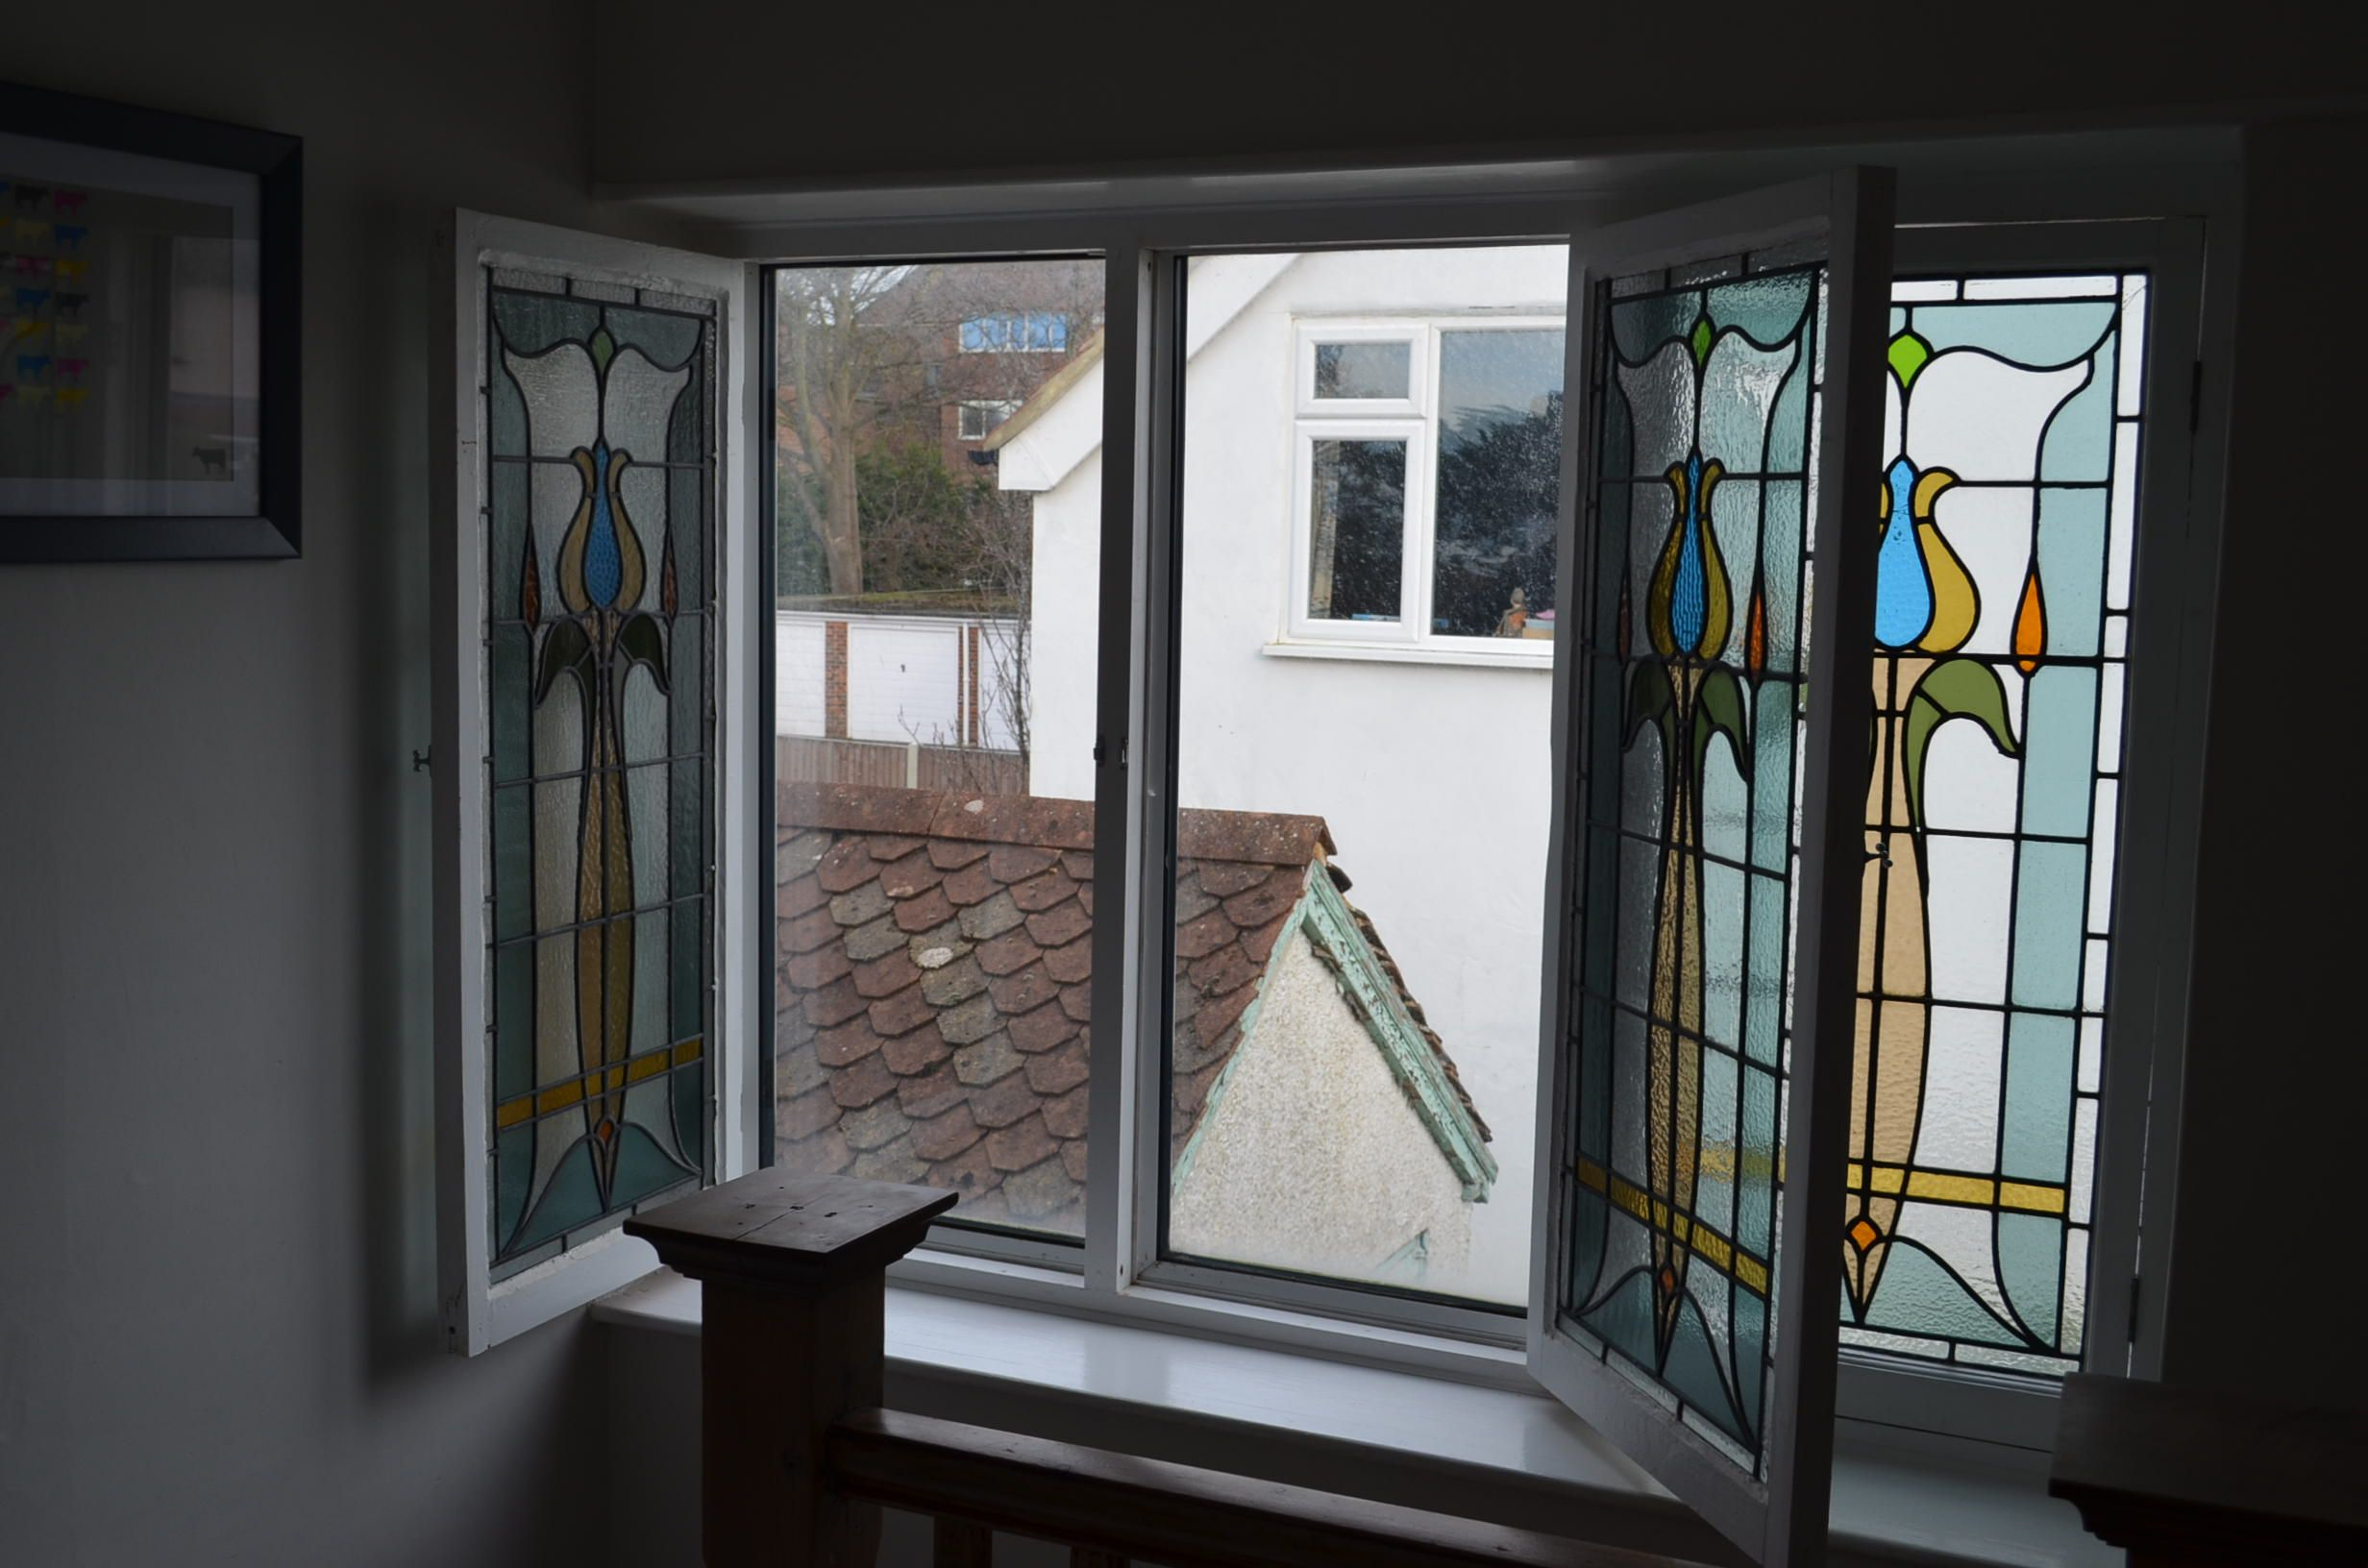 original 1920s stained glass window with double glazed installation, the original window was removed and restored and rebuilt inside the house behind a modern UPVC unit, the stained glass units open for cleaning